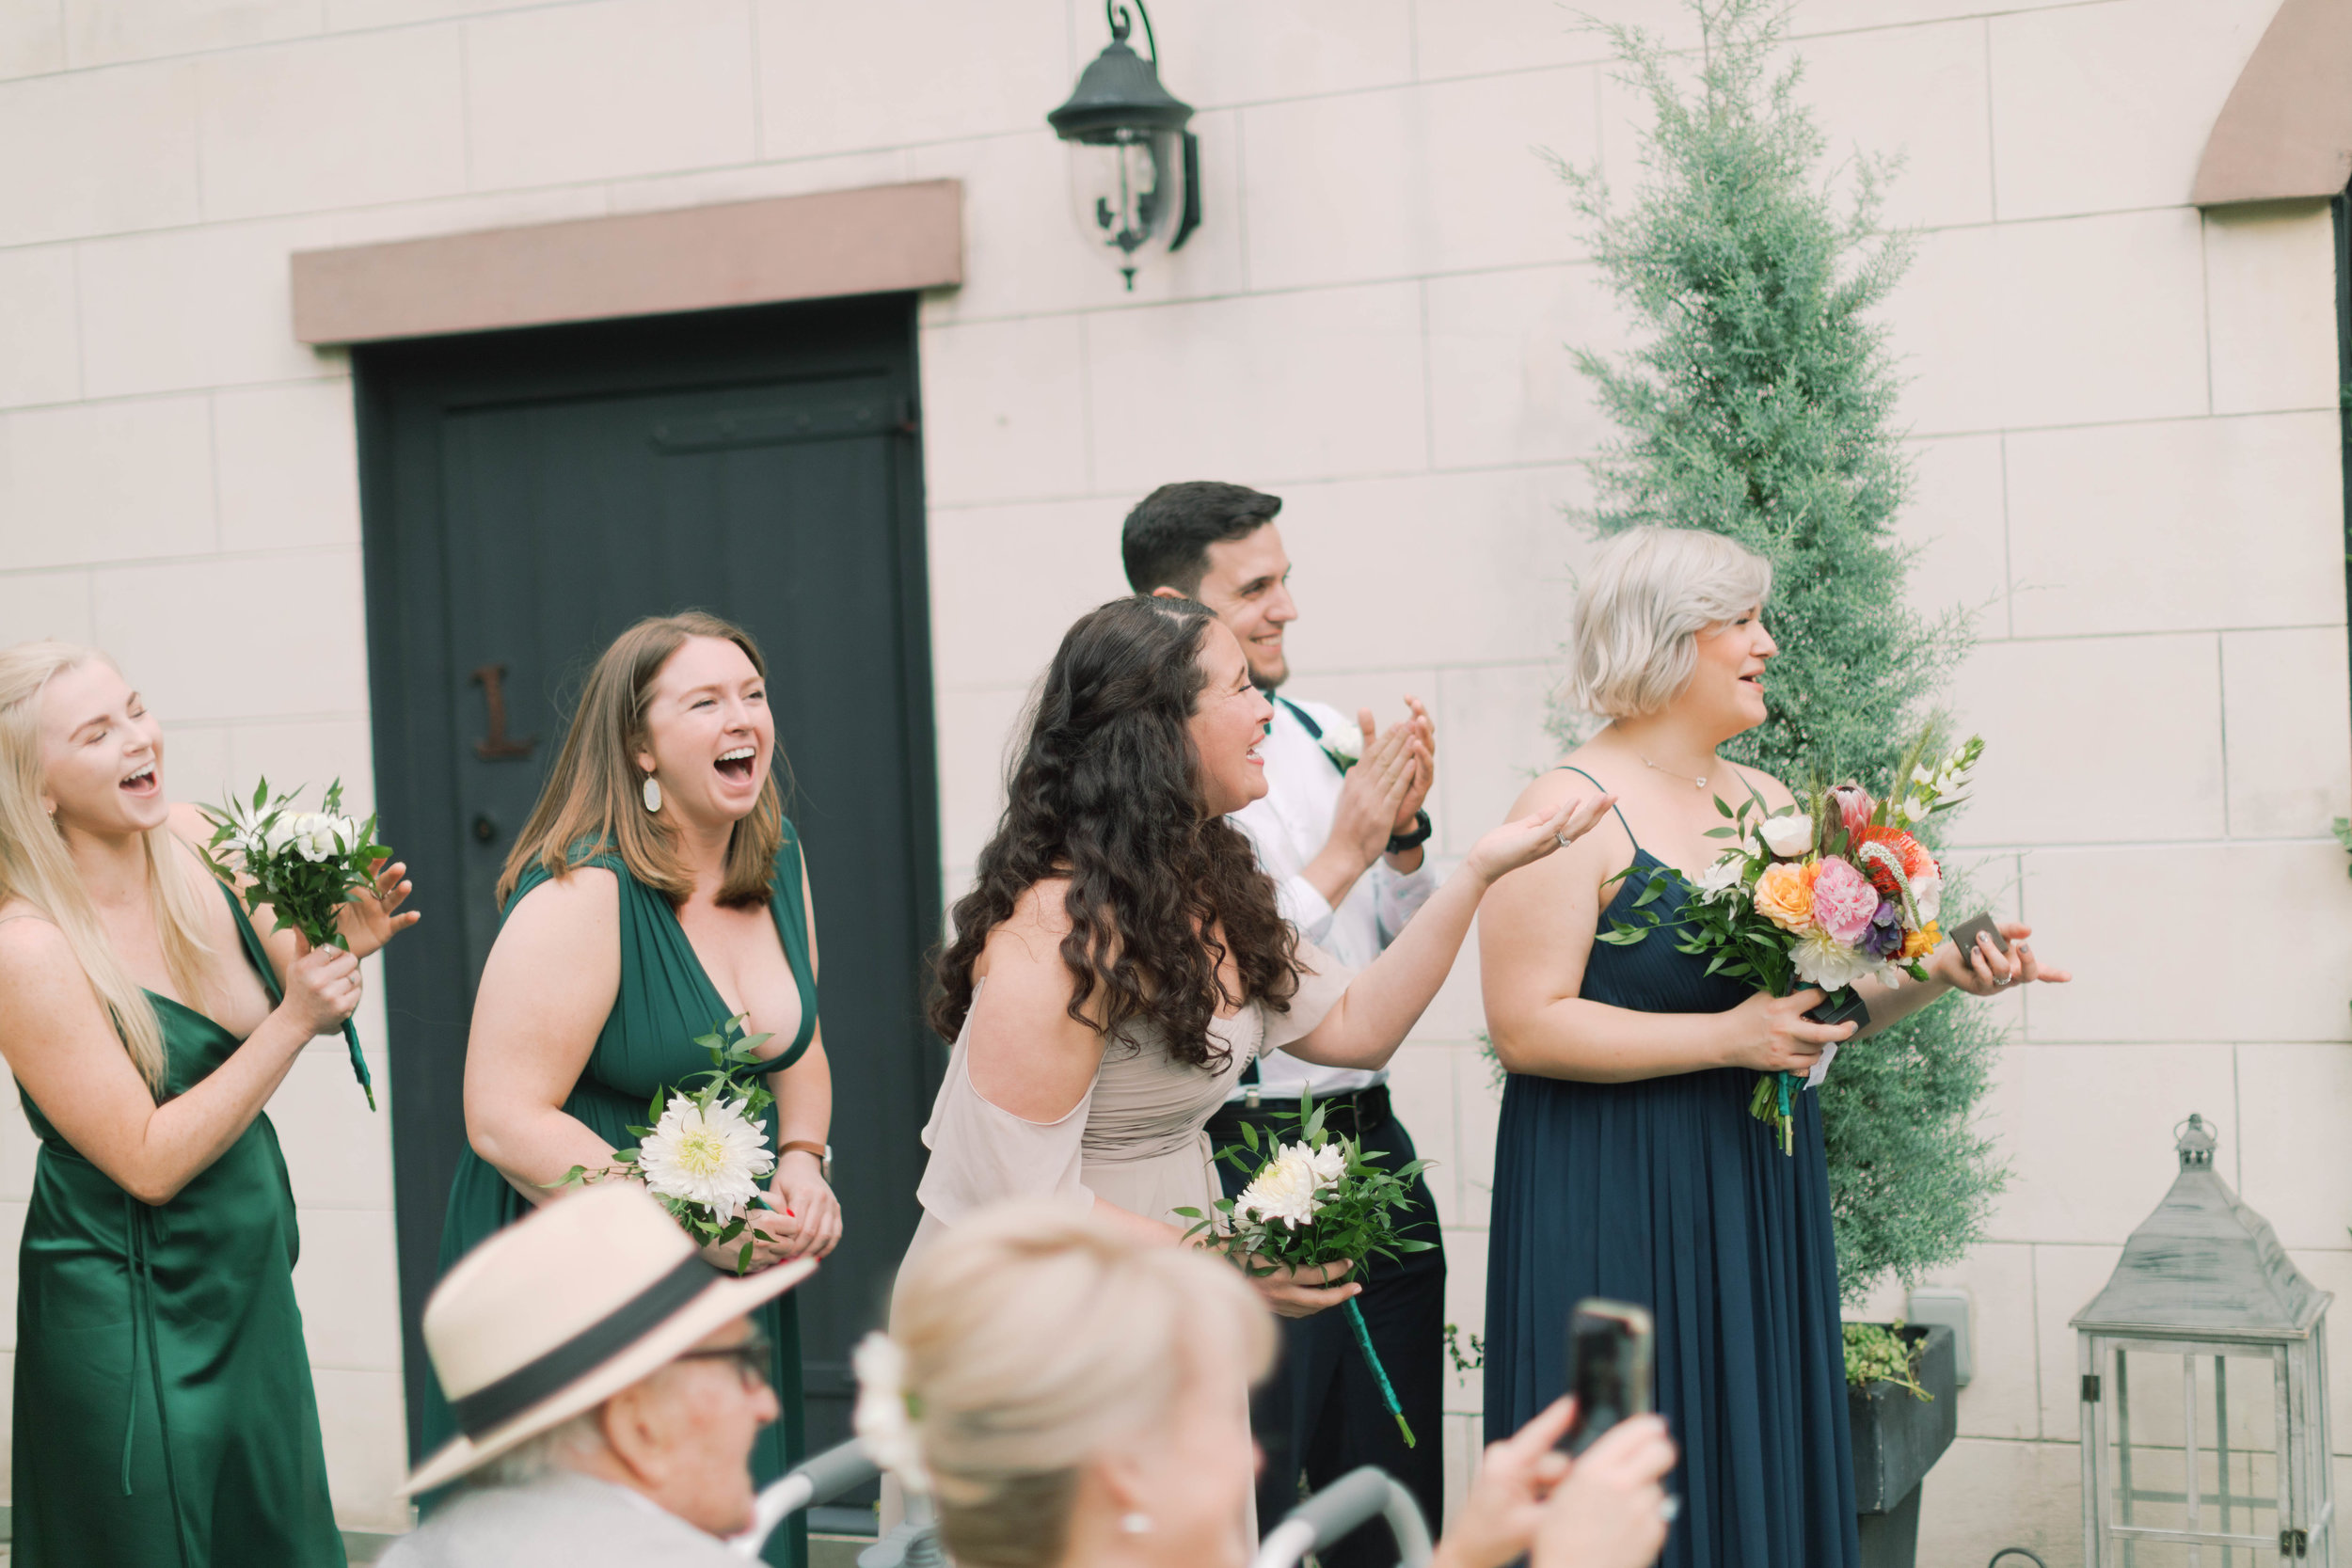 ivory-and-beau-wedding-holly-and-mike-how-to-incorporate-dogs-into-your-wedding-day-pastel-wedding-inspo-savannah-wedding-inspiration-bright-wedding-flowers-southern-wedding-style-savannah-classic-wedding-flower-crown-wedding-classic-southern-wedding-savannah-wedding-planner-savannah-wedding-florist-savannah-wedding-dress-shop